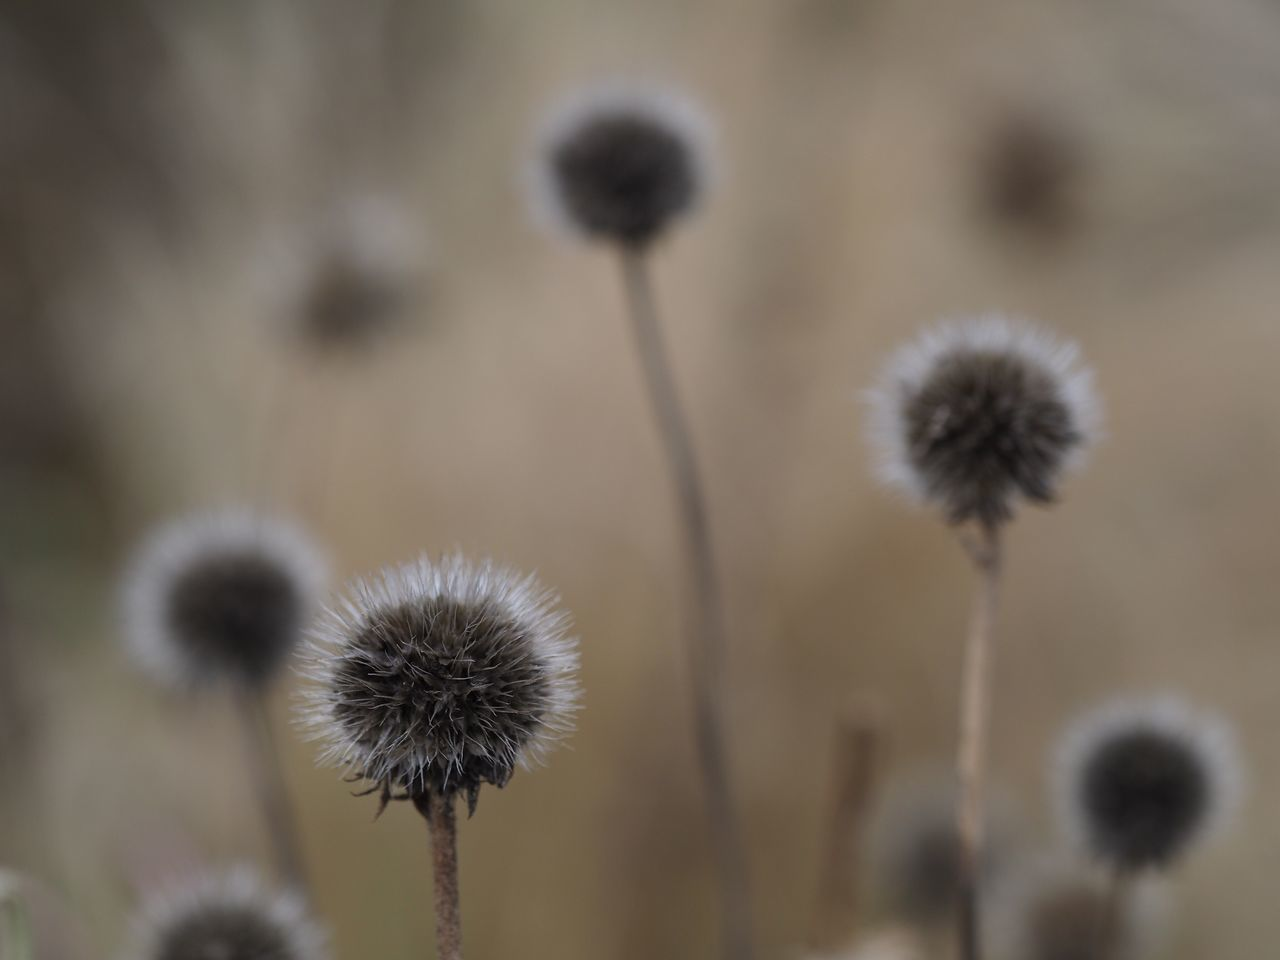 Look like balloons ascending. Flower Fragility Nature Growth Flower Head Focus On Foreground Plant Freshness Beauty In Nature No People Blooming Outdoors Close-up Pussy Willow Day Nature On Your Doorstep First Eyeem Photo Quite Moments Silent Moment Nature Softness Plant